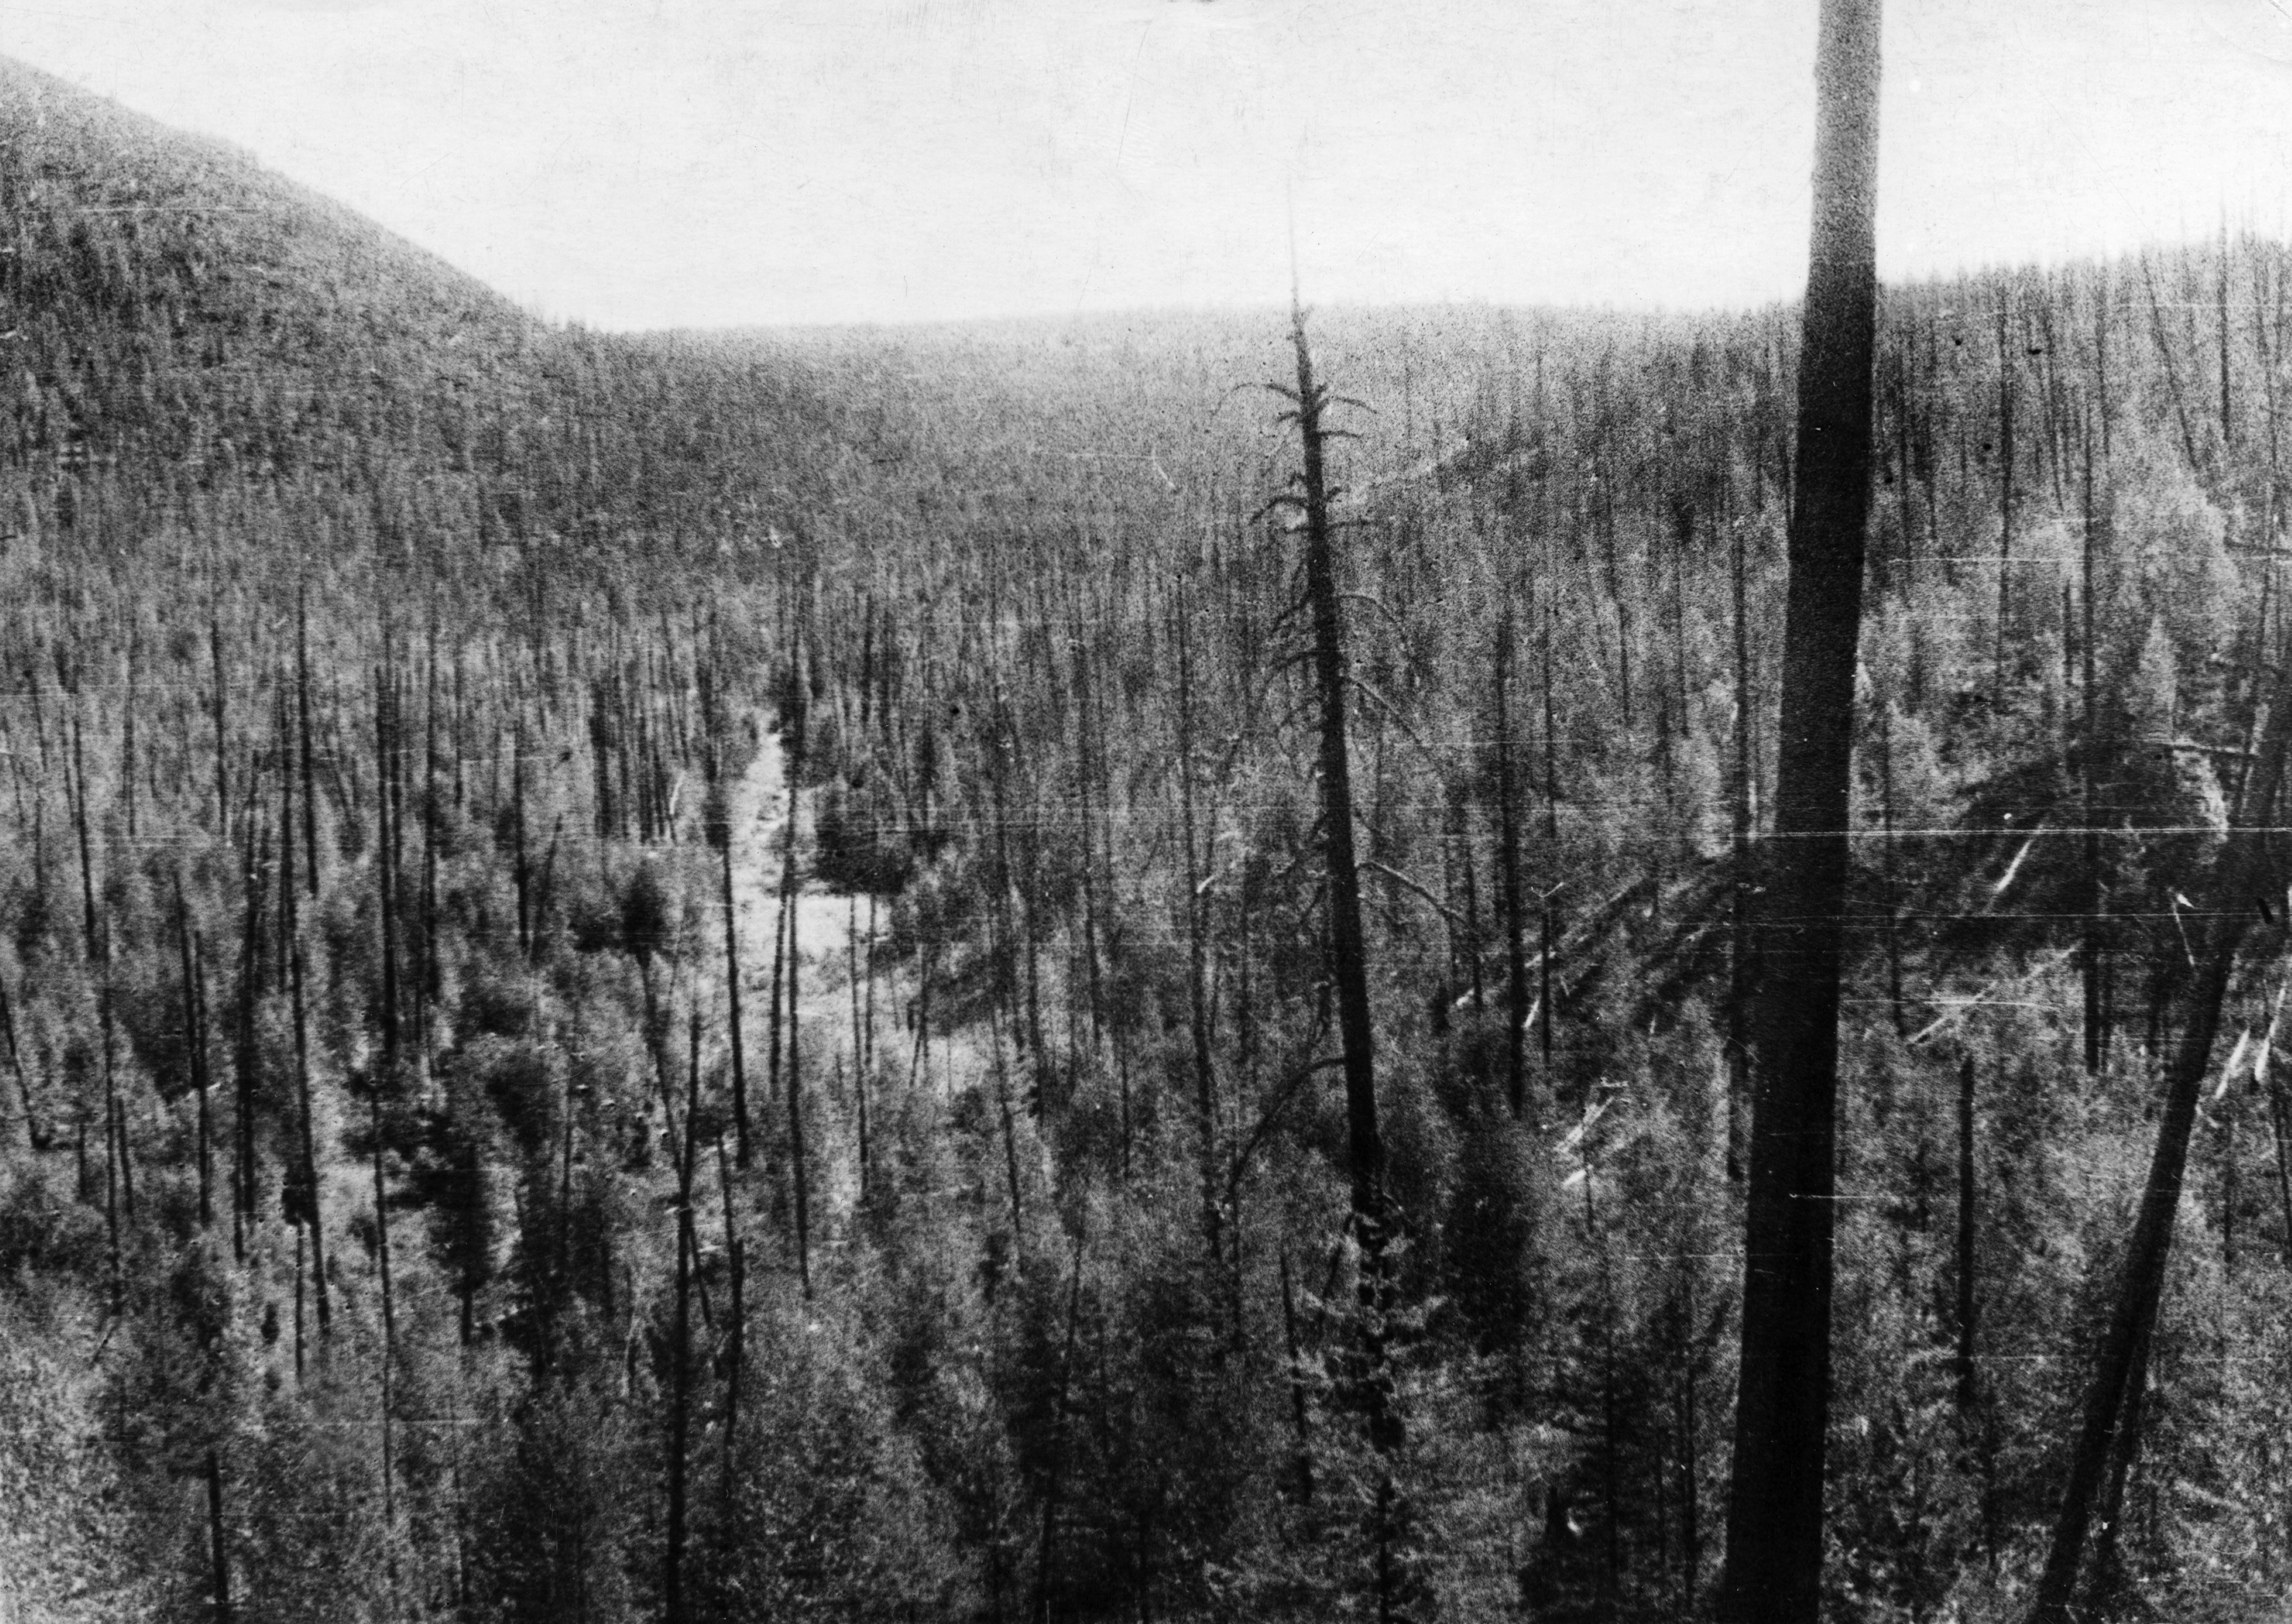 Tunguska meteorite, the valley of the churgima stream, 4km south of where the meteorite fell in 1908, the hills are covered with fallen and burnt trees and young growth, this picture was taken during professor leonid kulik's 1938 expedition to investigate the event. (Photo by: Sovfoto/Universal Images Group via Getty Images)